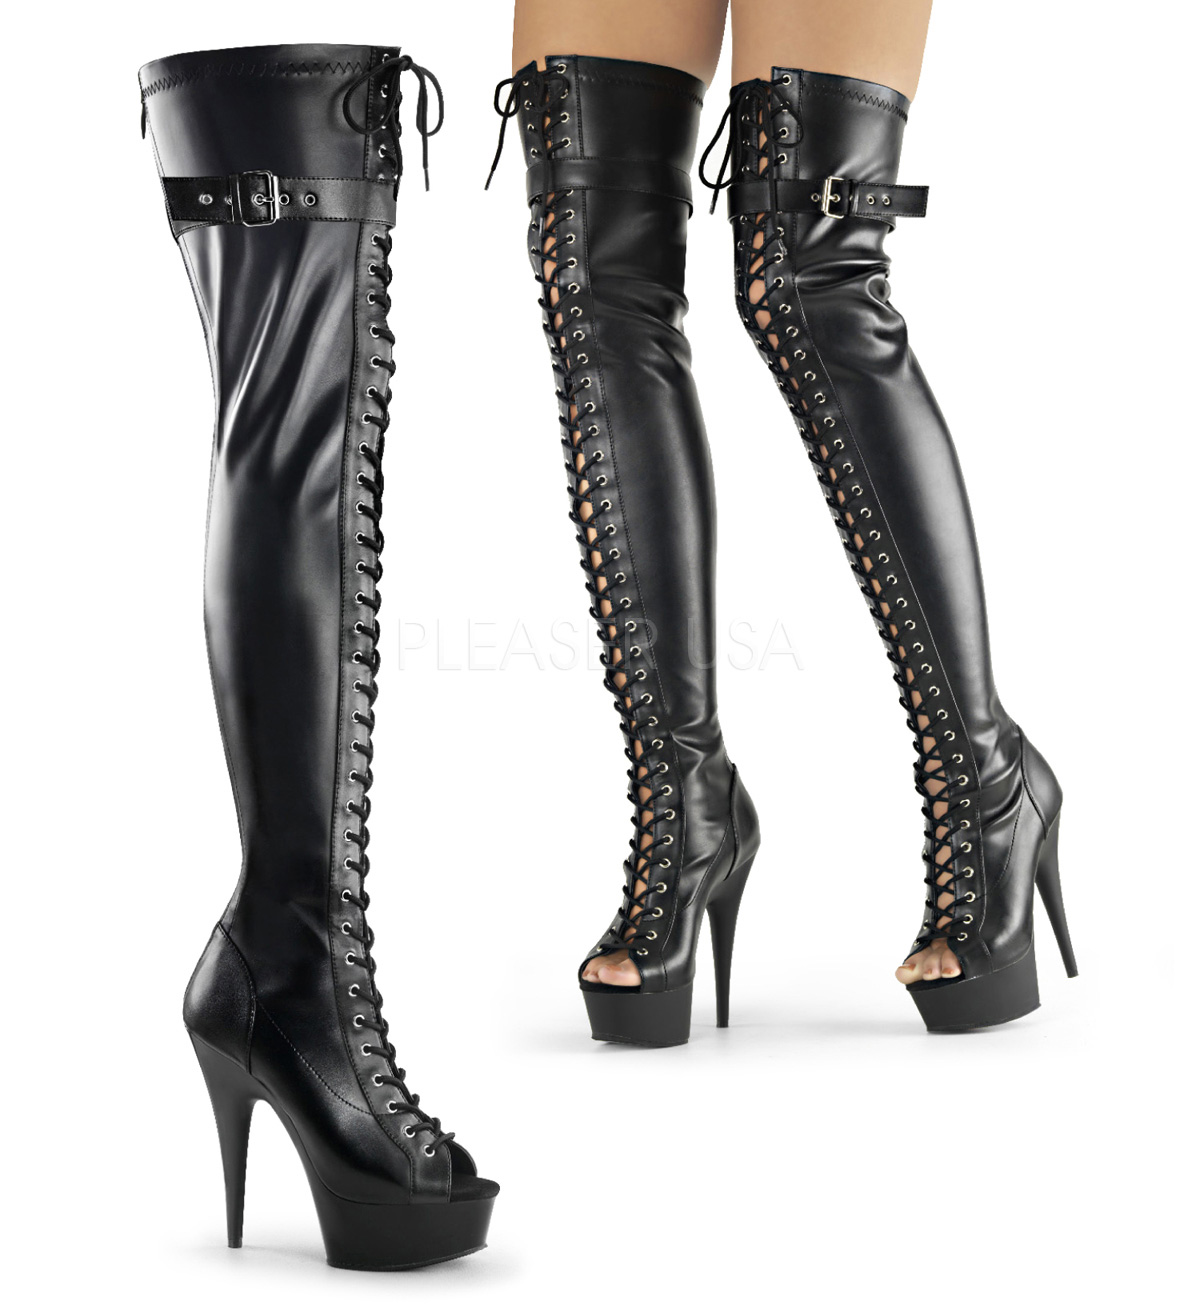 Pleaser Thigh High Boots oeYSSI8W